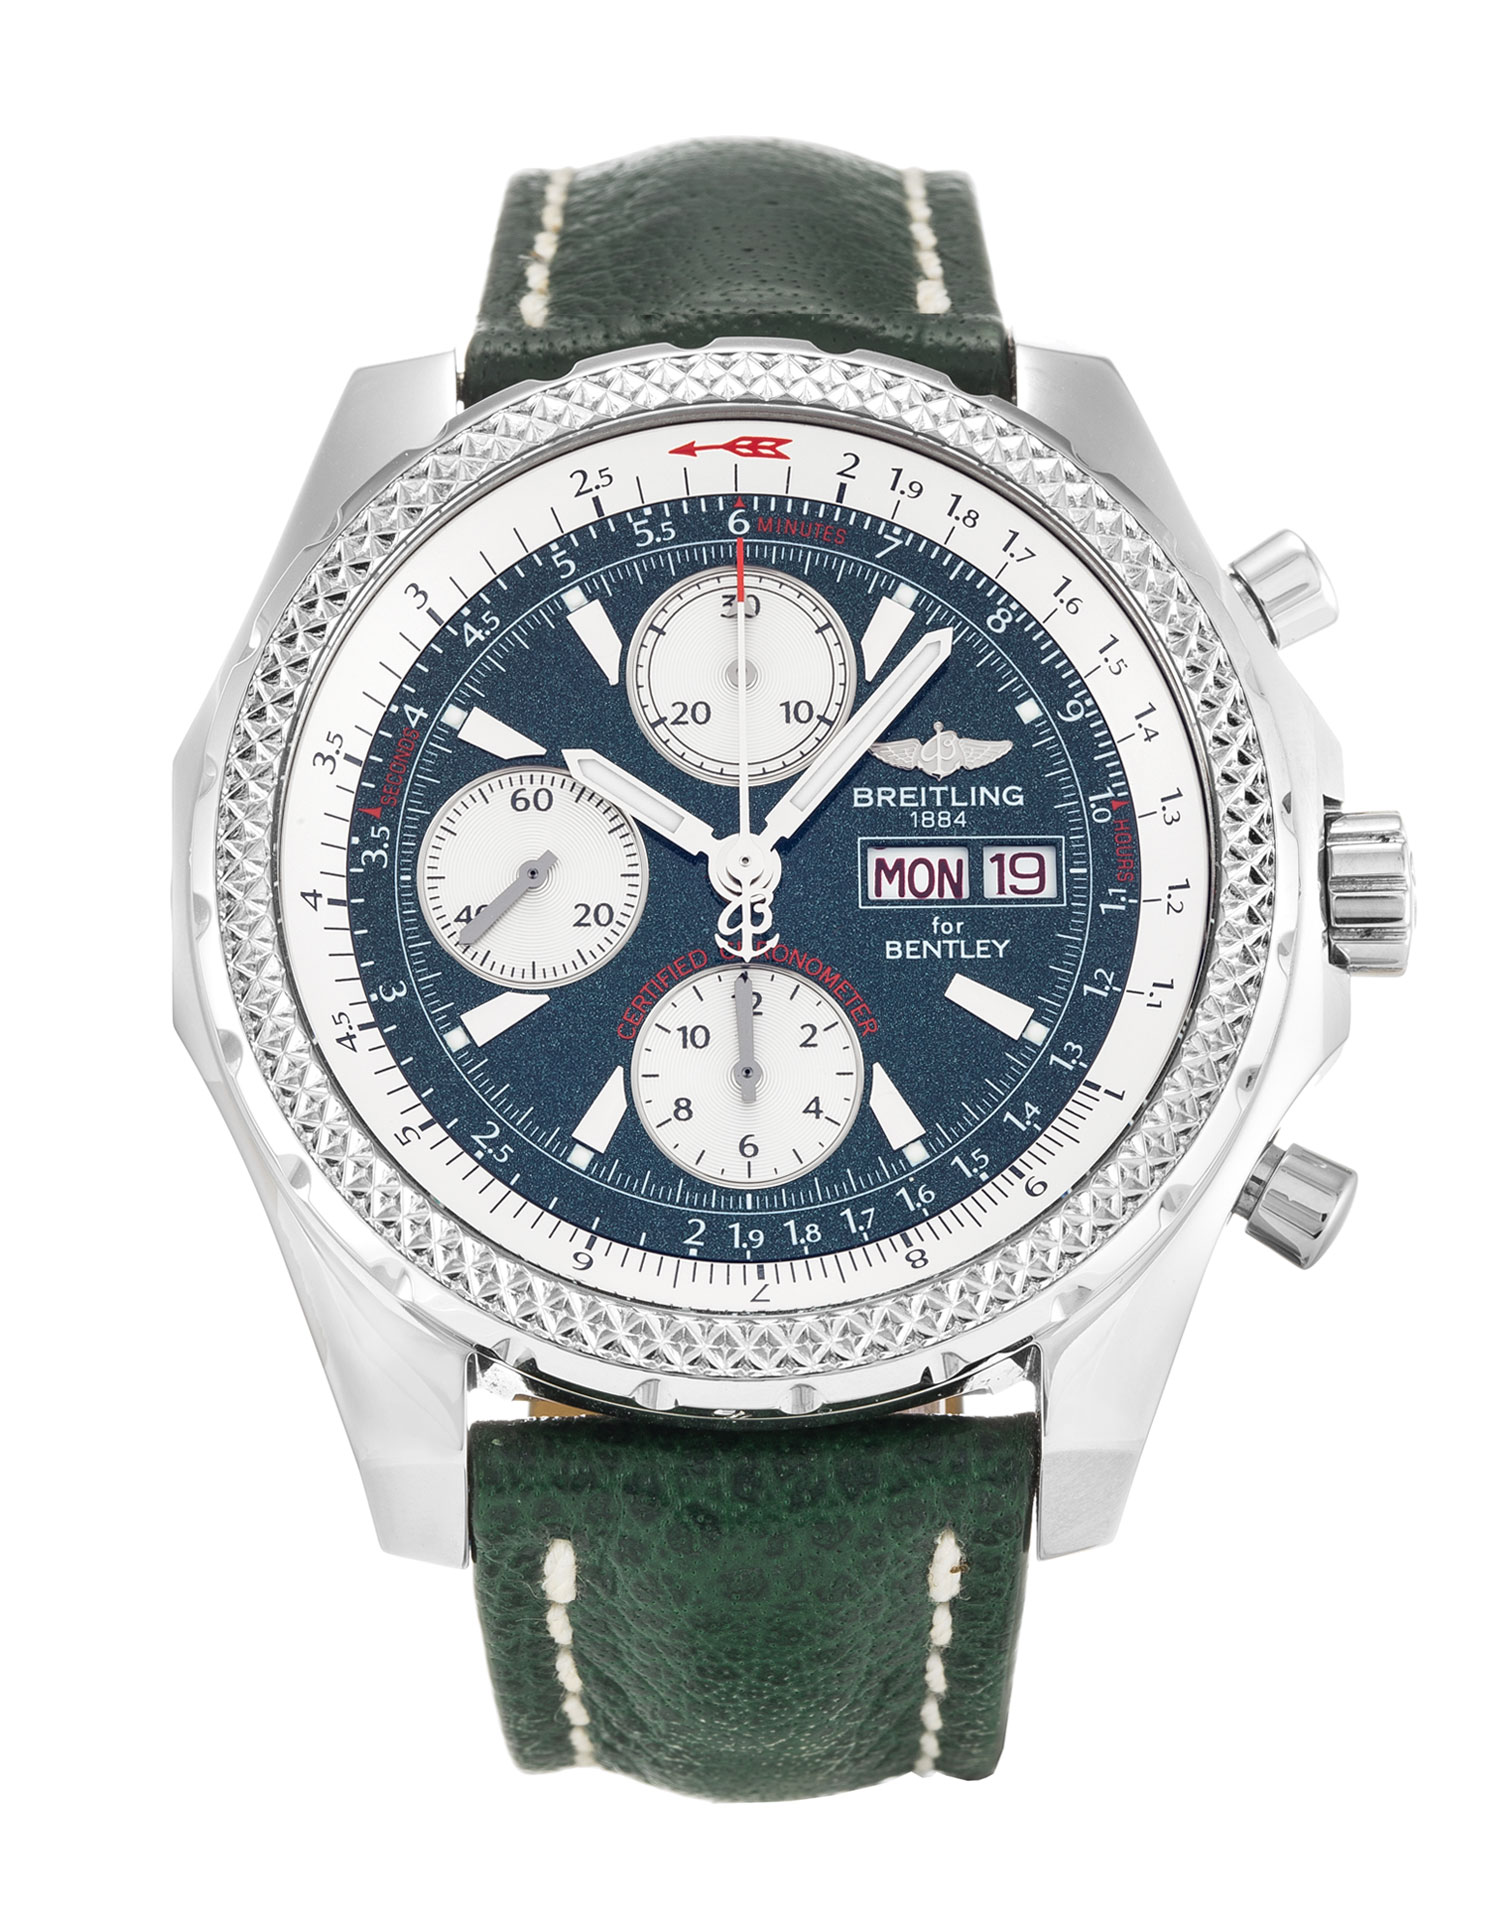 Breitling Replica Watches